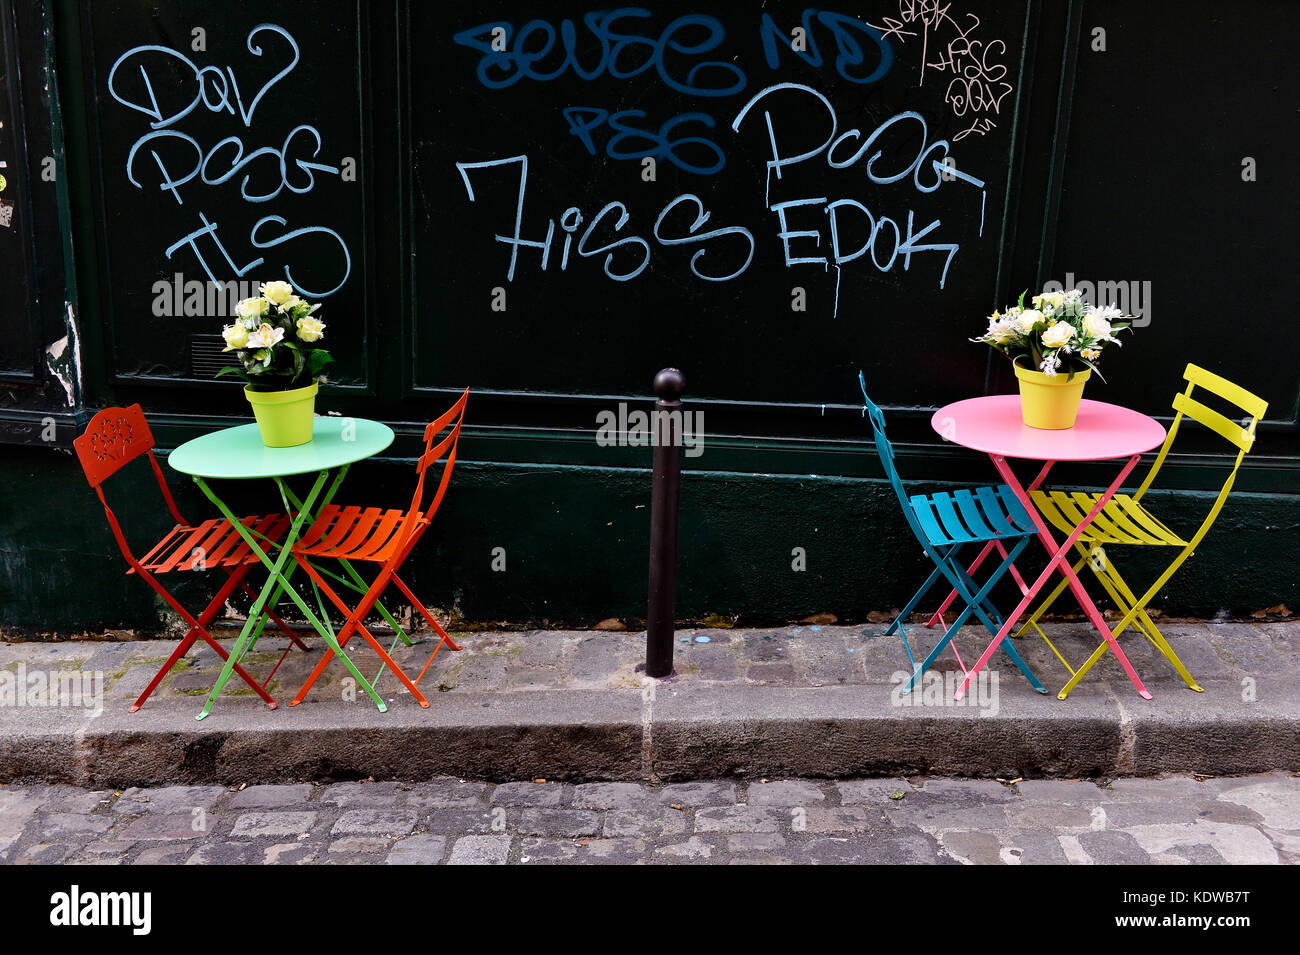 Bistrot terrace in Montmartre - Paris - France - Stock Image